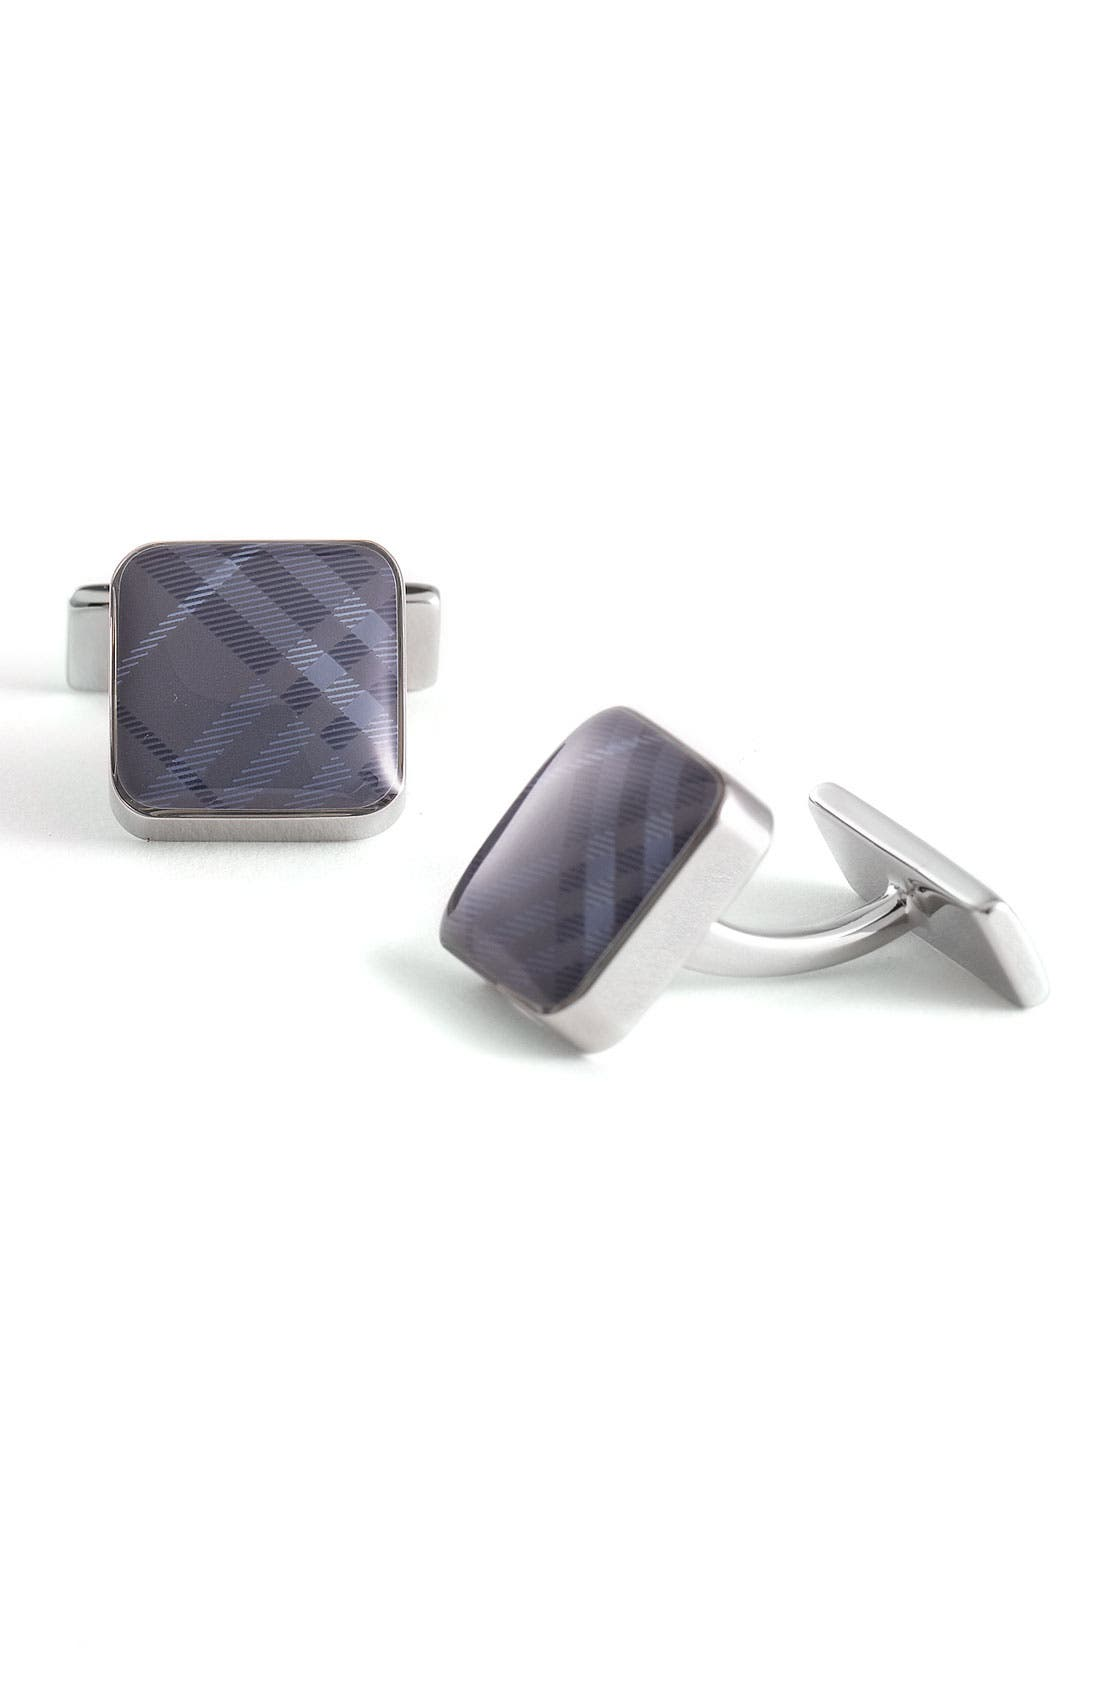 Alternate Image 1 Selected - Burberry Check Square Cuff Links